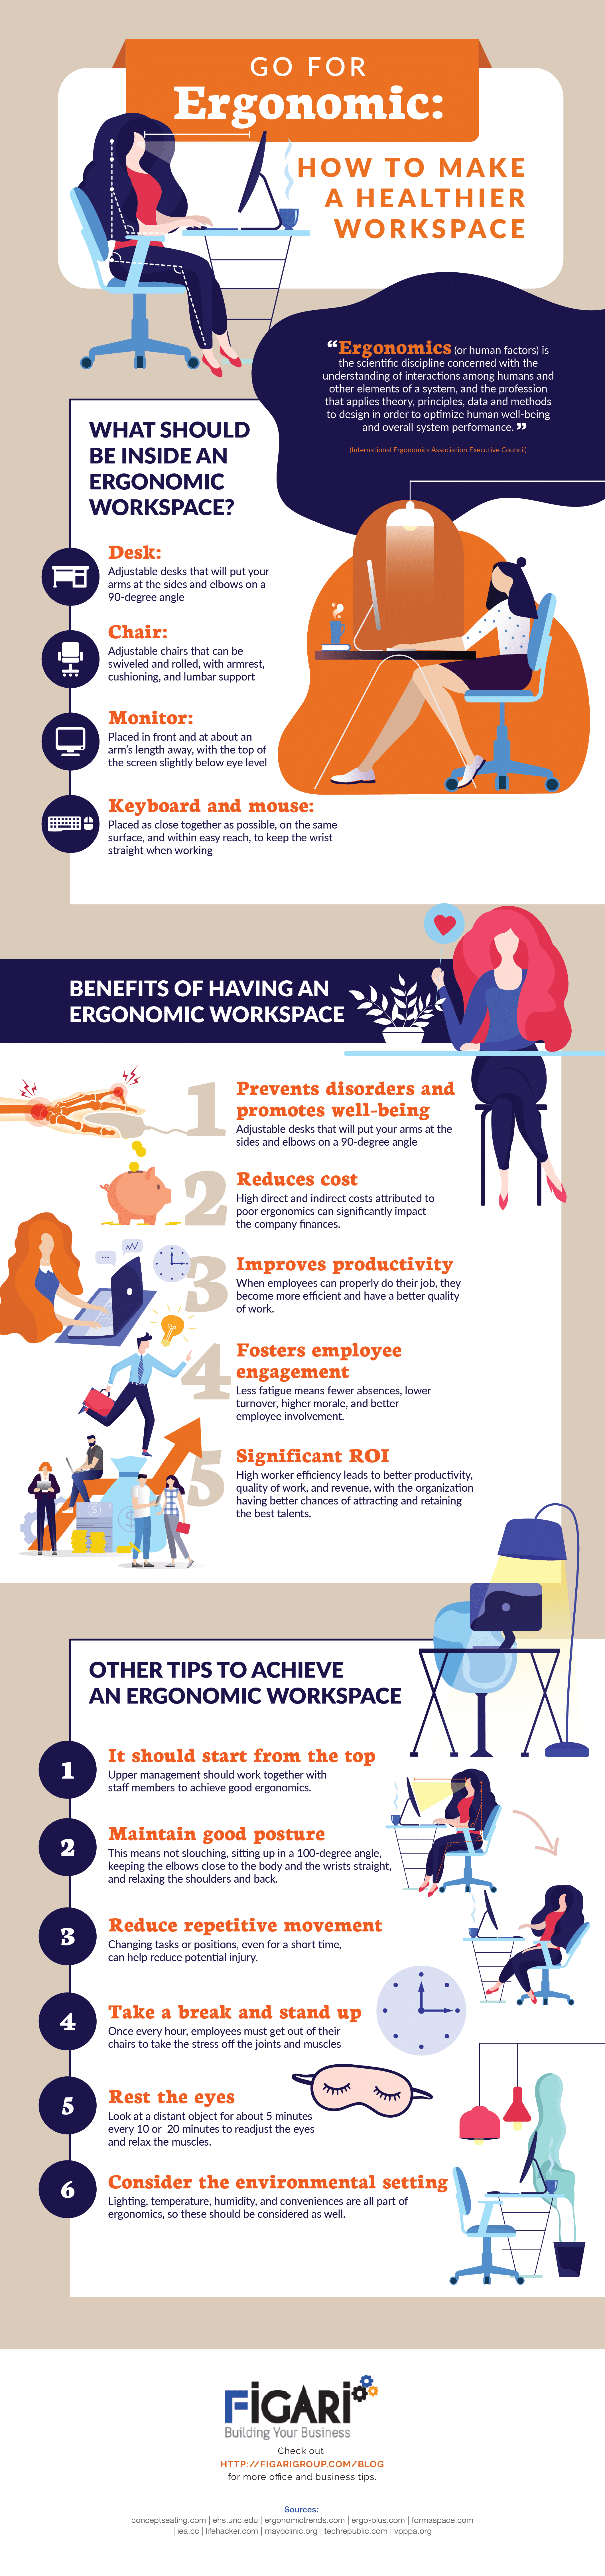 Go for Ergonomic - How to Make a Healthier Workspace Infographic